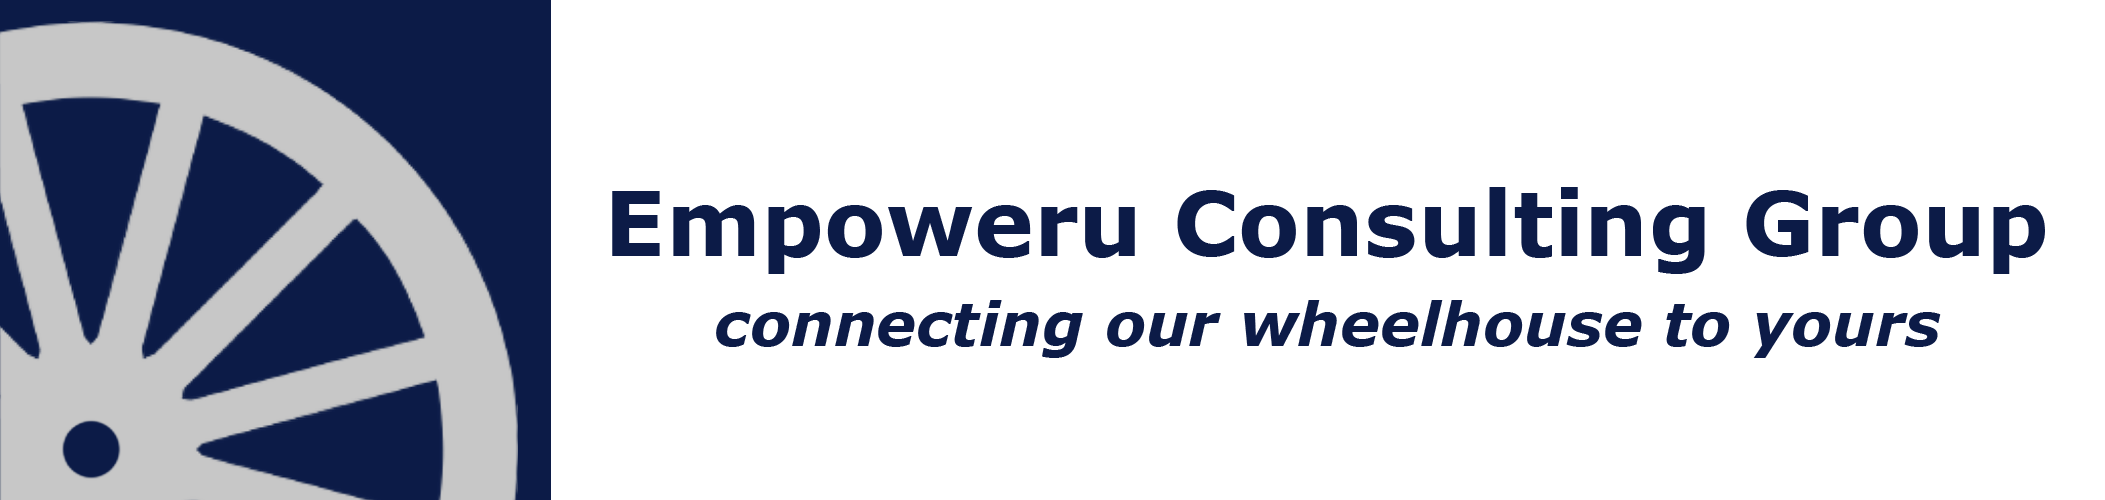 Empoweru Consulting Group